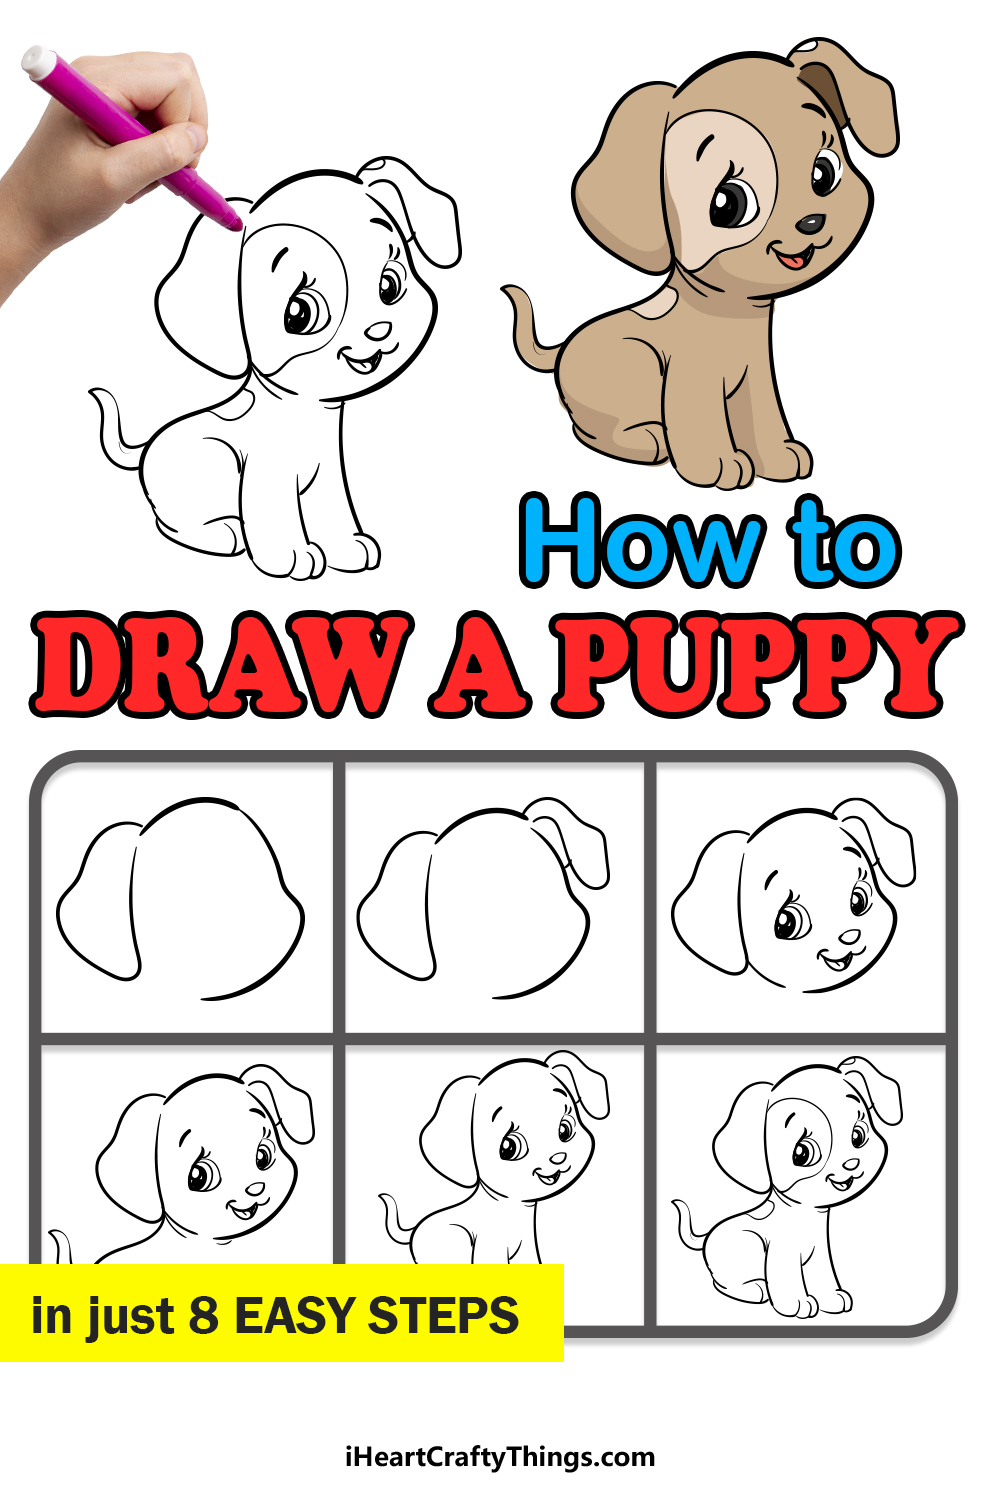 how to draw a puppy in 8 easy steps